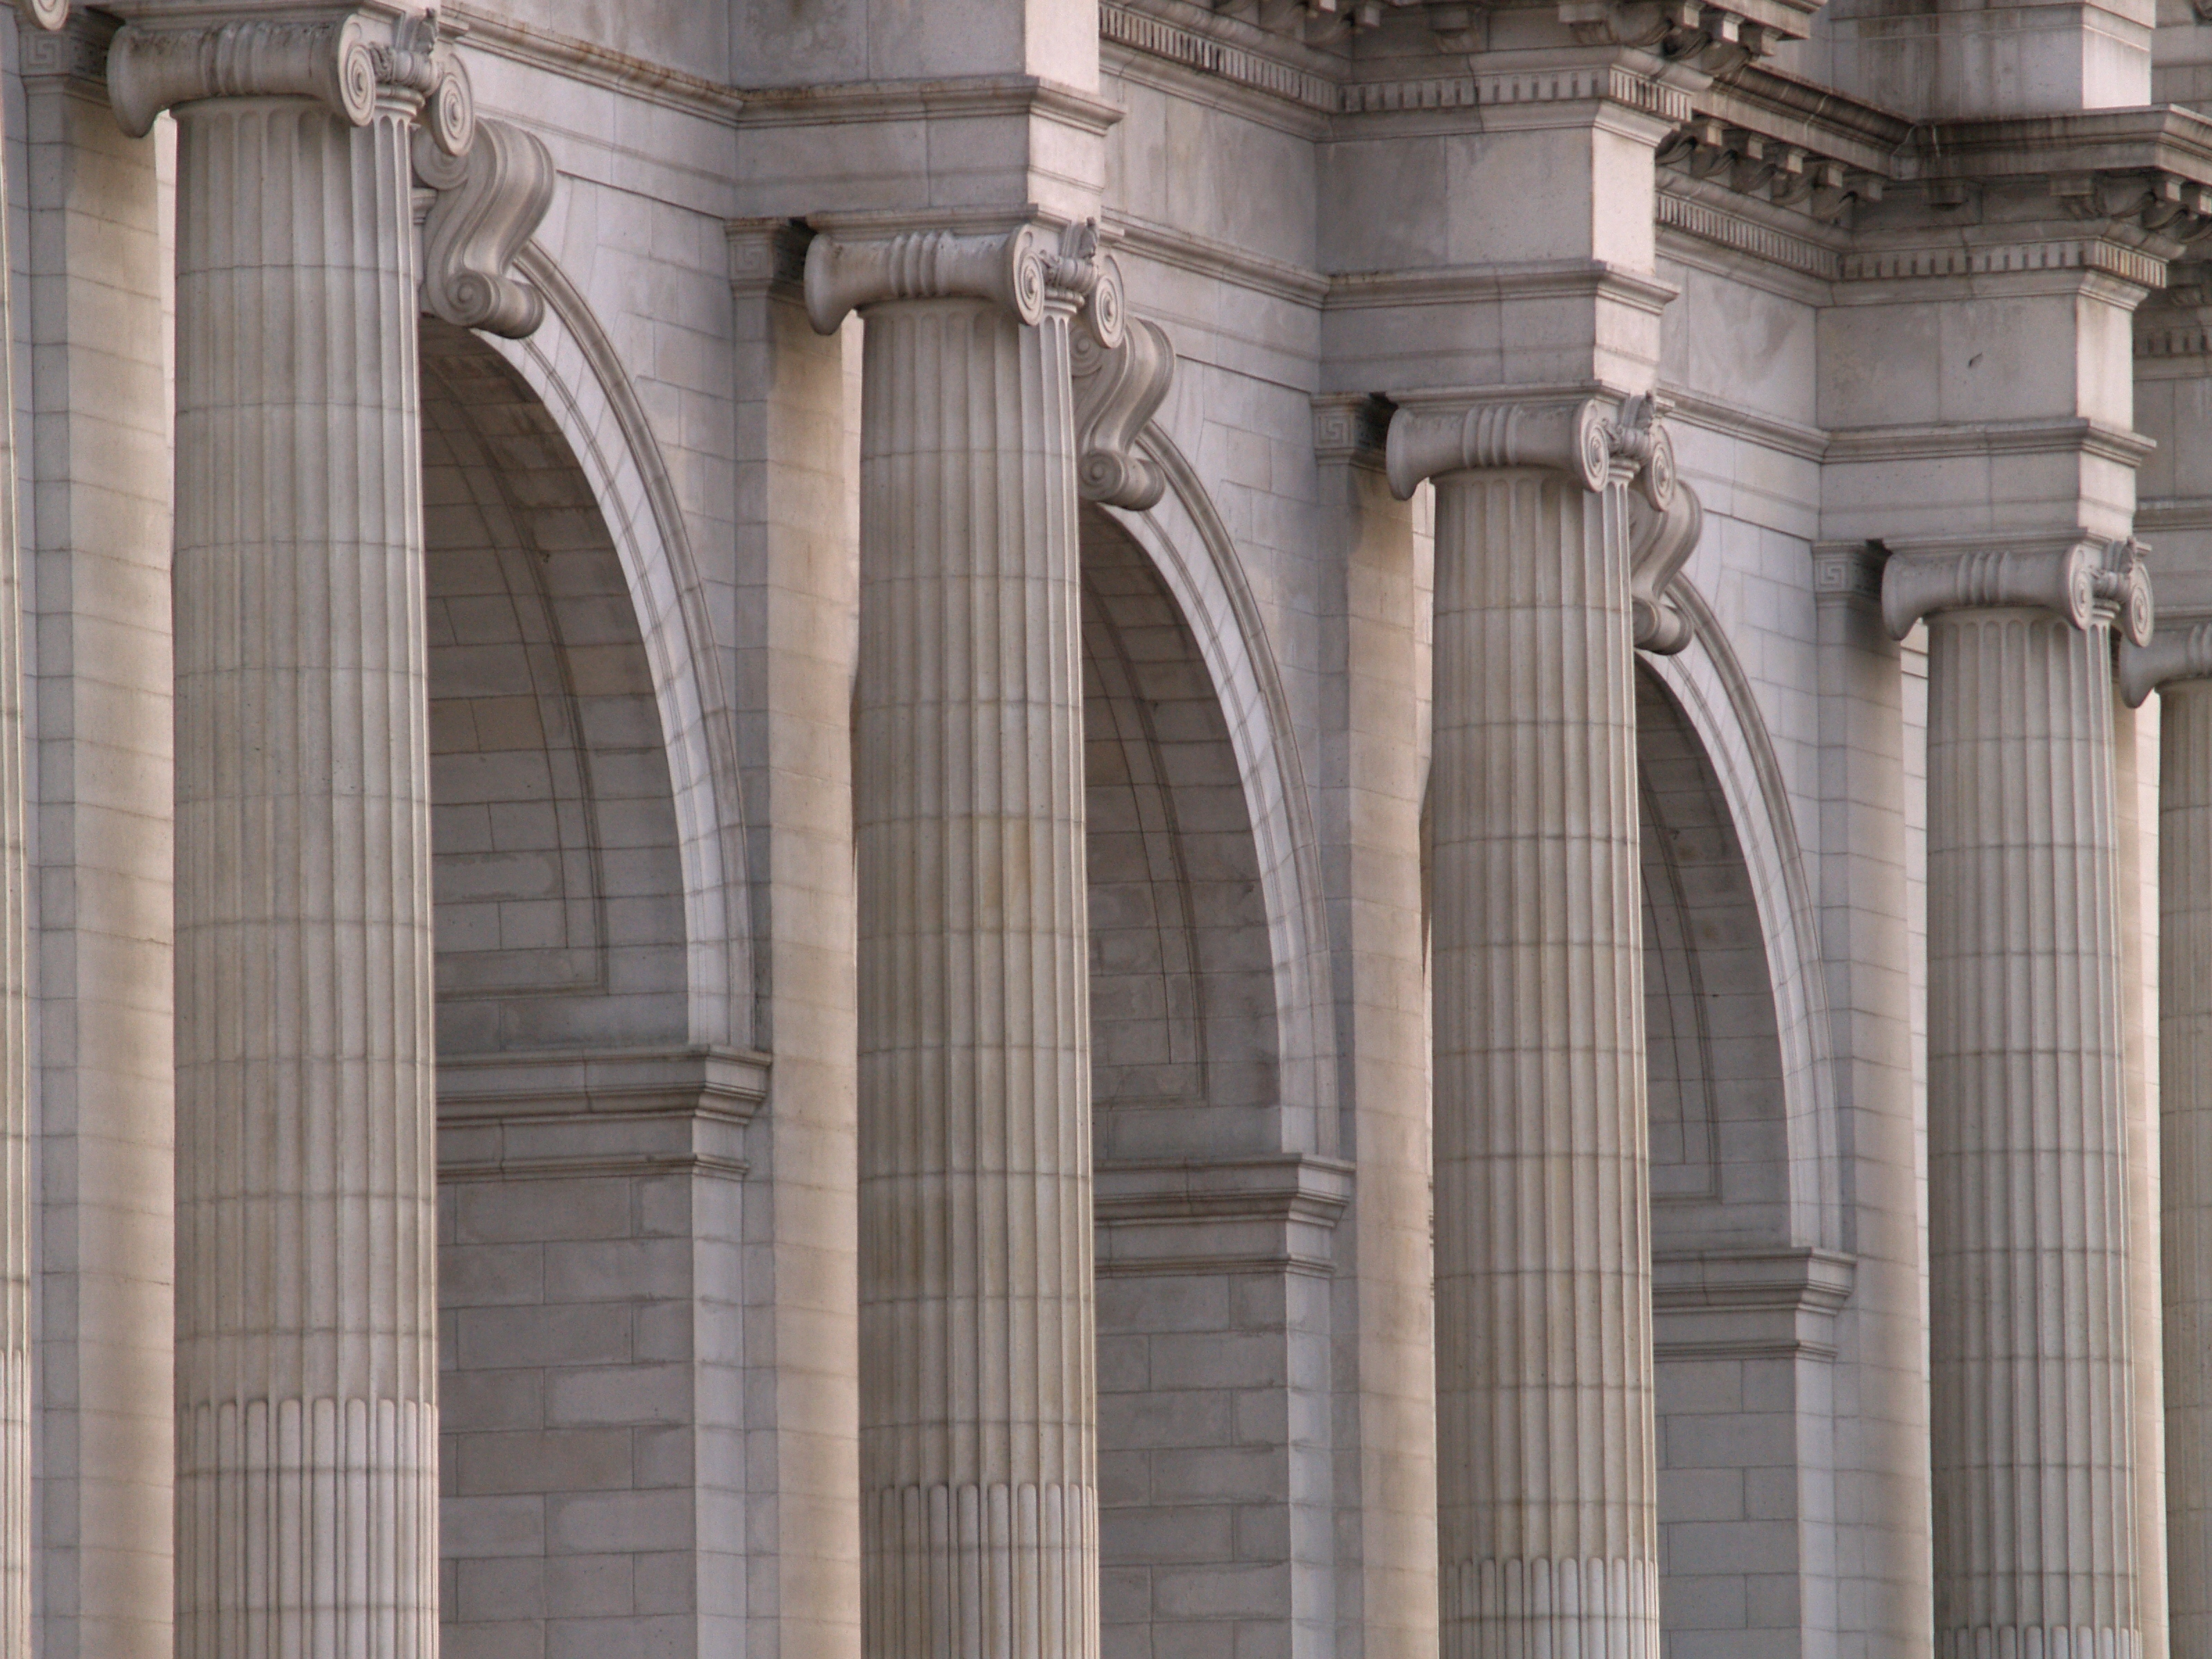 Pillars And Columns : File union station columns and arches washington dc g